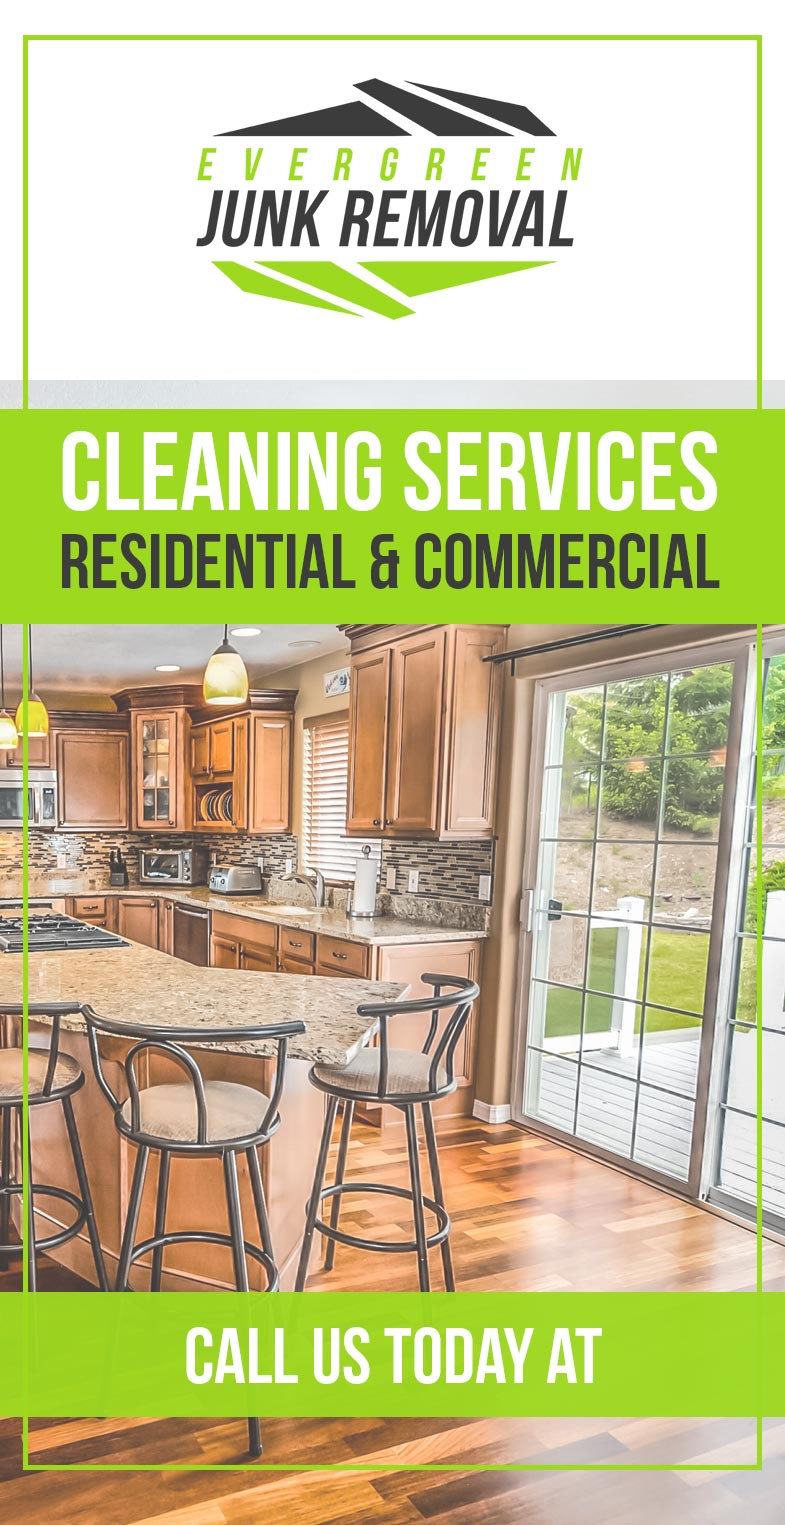 Greenacres Maid Services